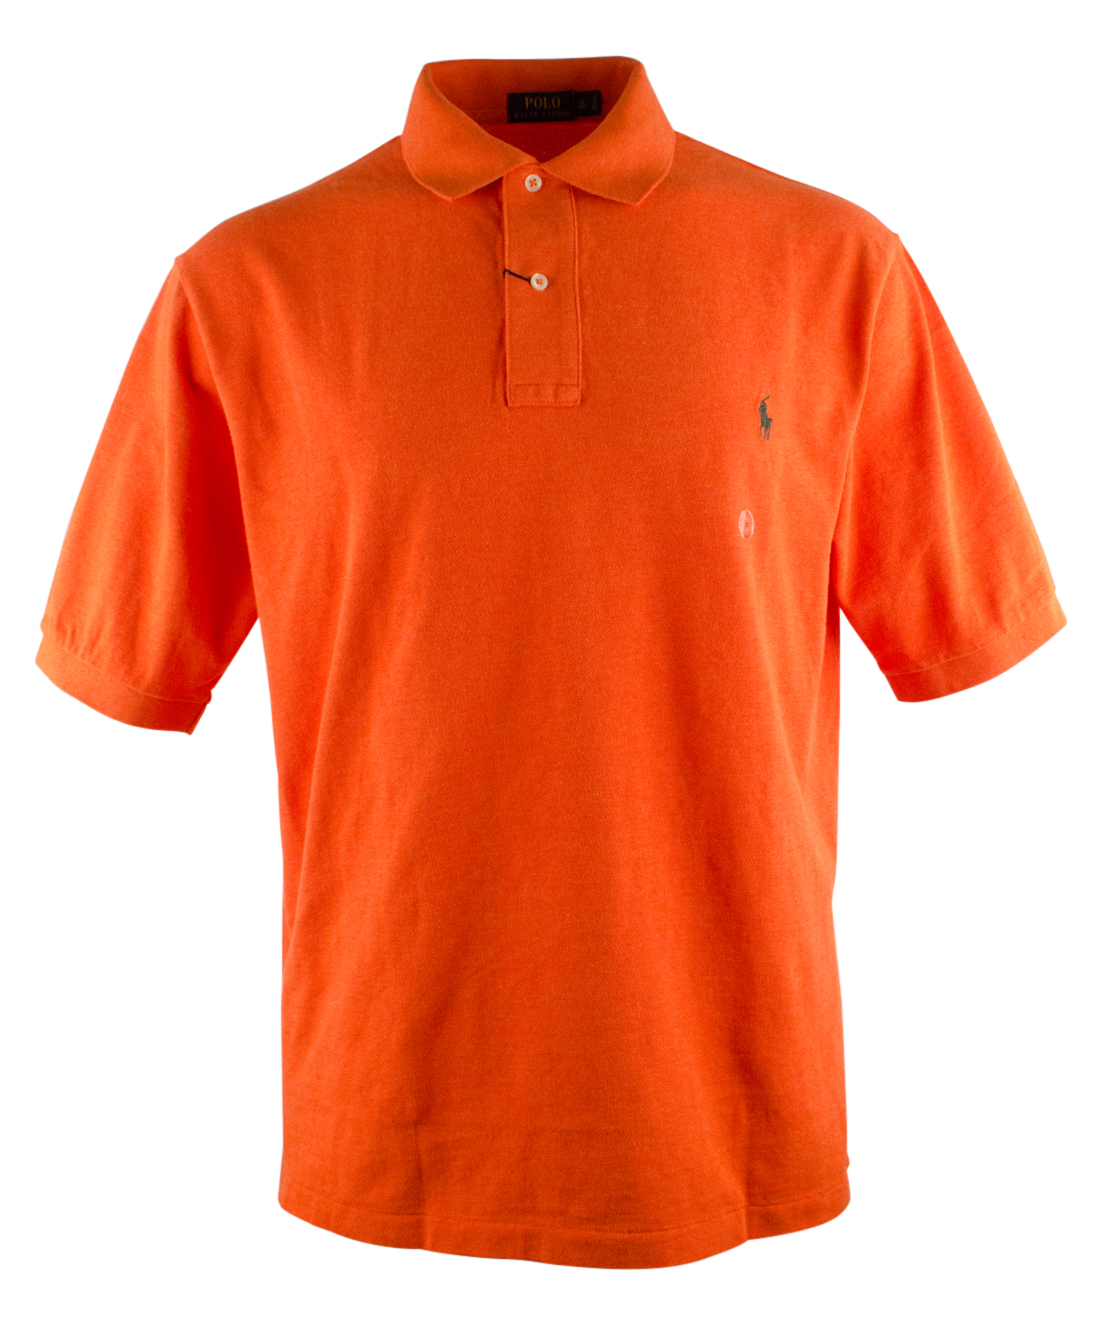 Polo ralph lauren men 39 s big and tall classic fit short for Mens big and tall golf shirts